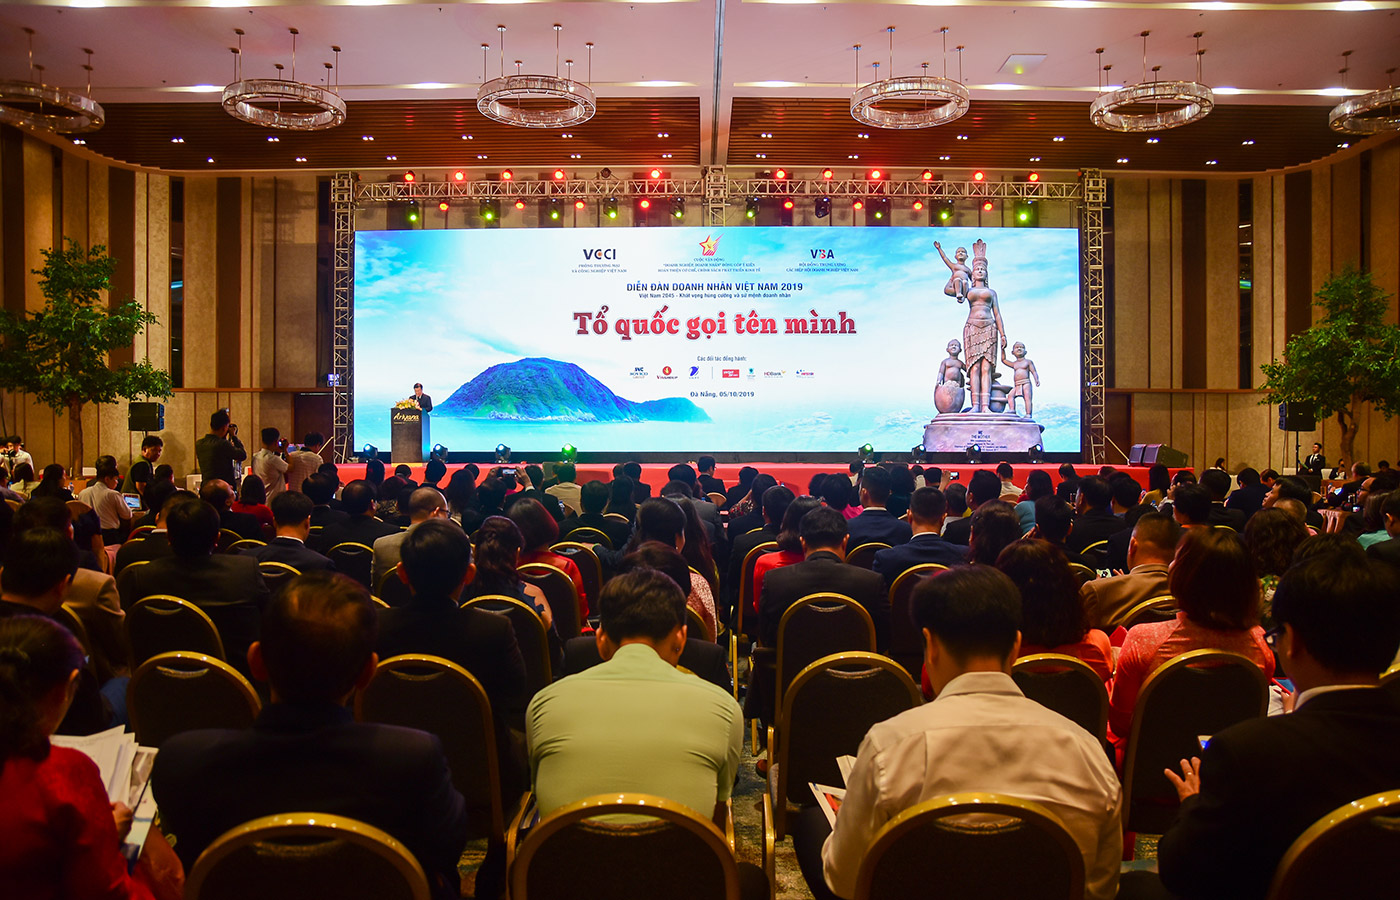 VIETNAMESE ENTREPRENEURS ASPIRE TO PEACE, INTEGRATION AND PROSPERITY